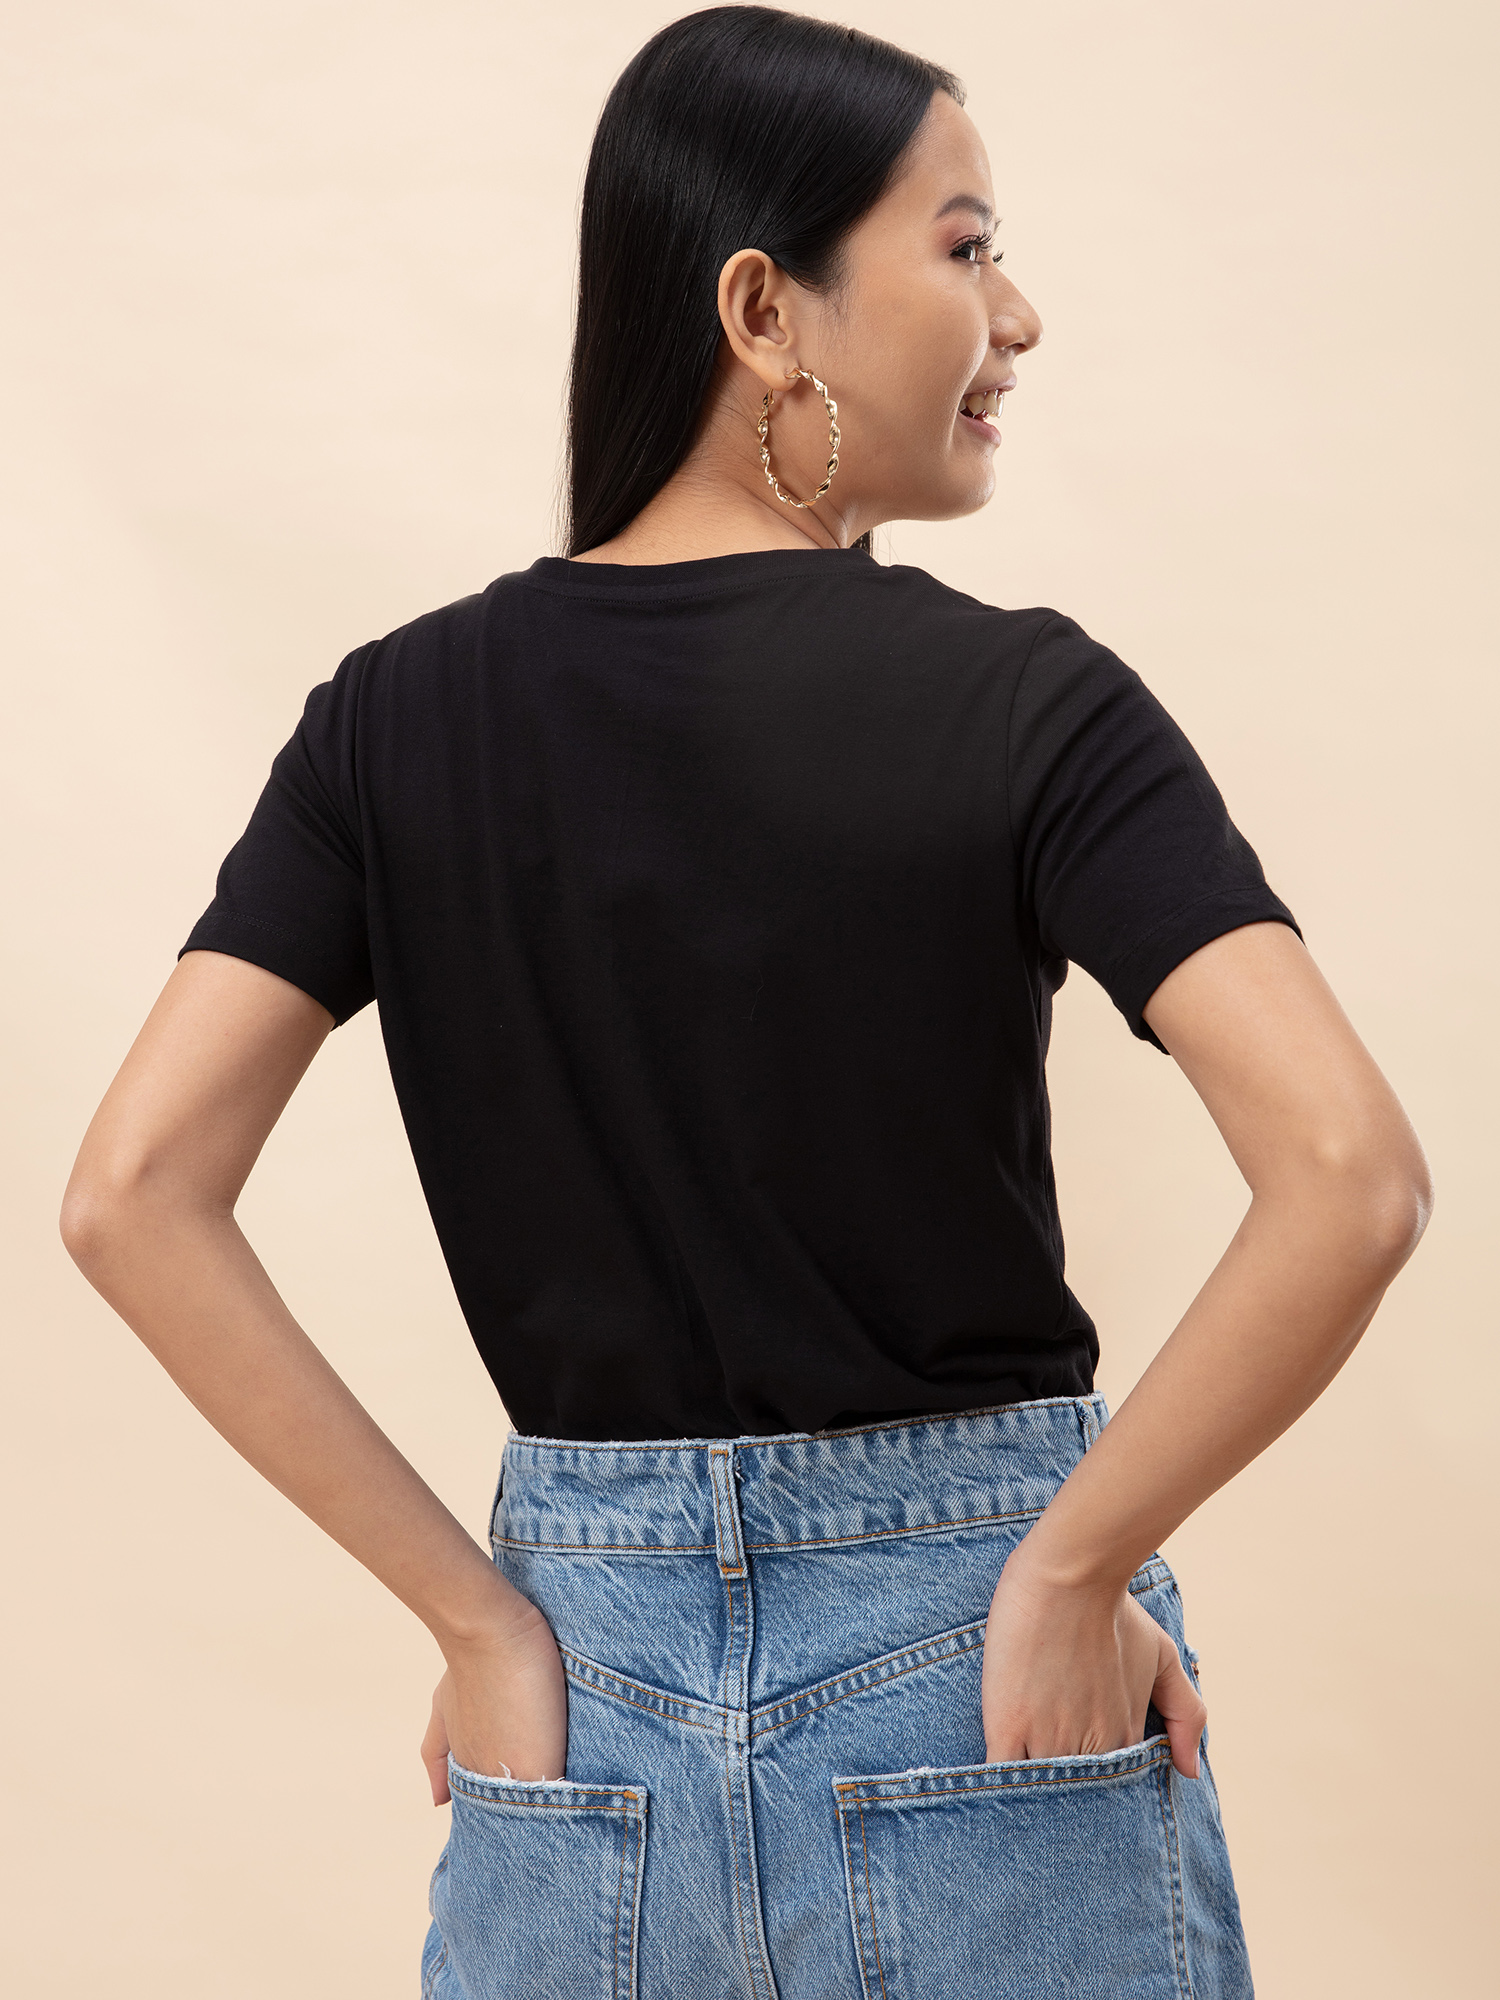 Tops-All About The Basics Black T-shirt3